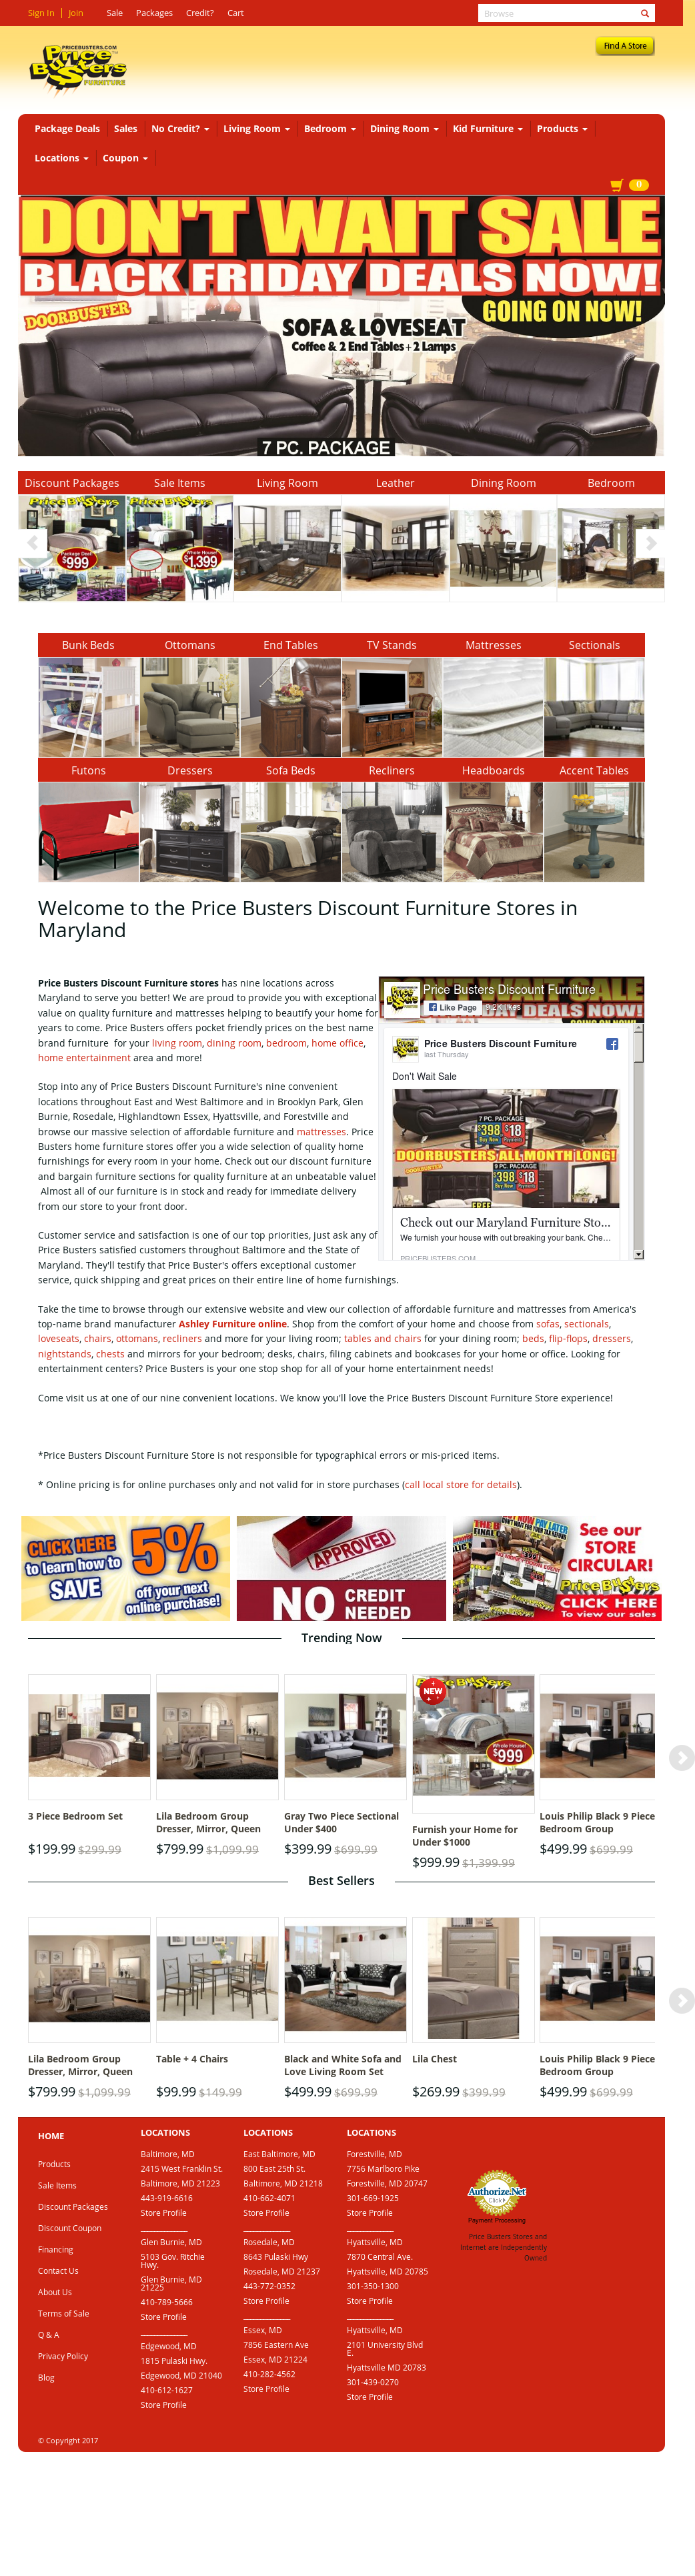 Price Busters Furniture Stores In Maryland Competitors Revenue And